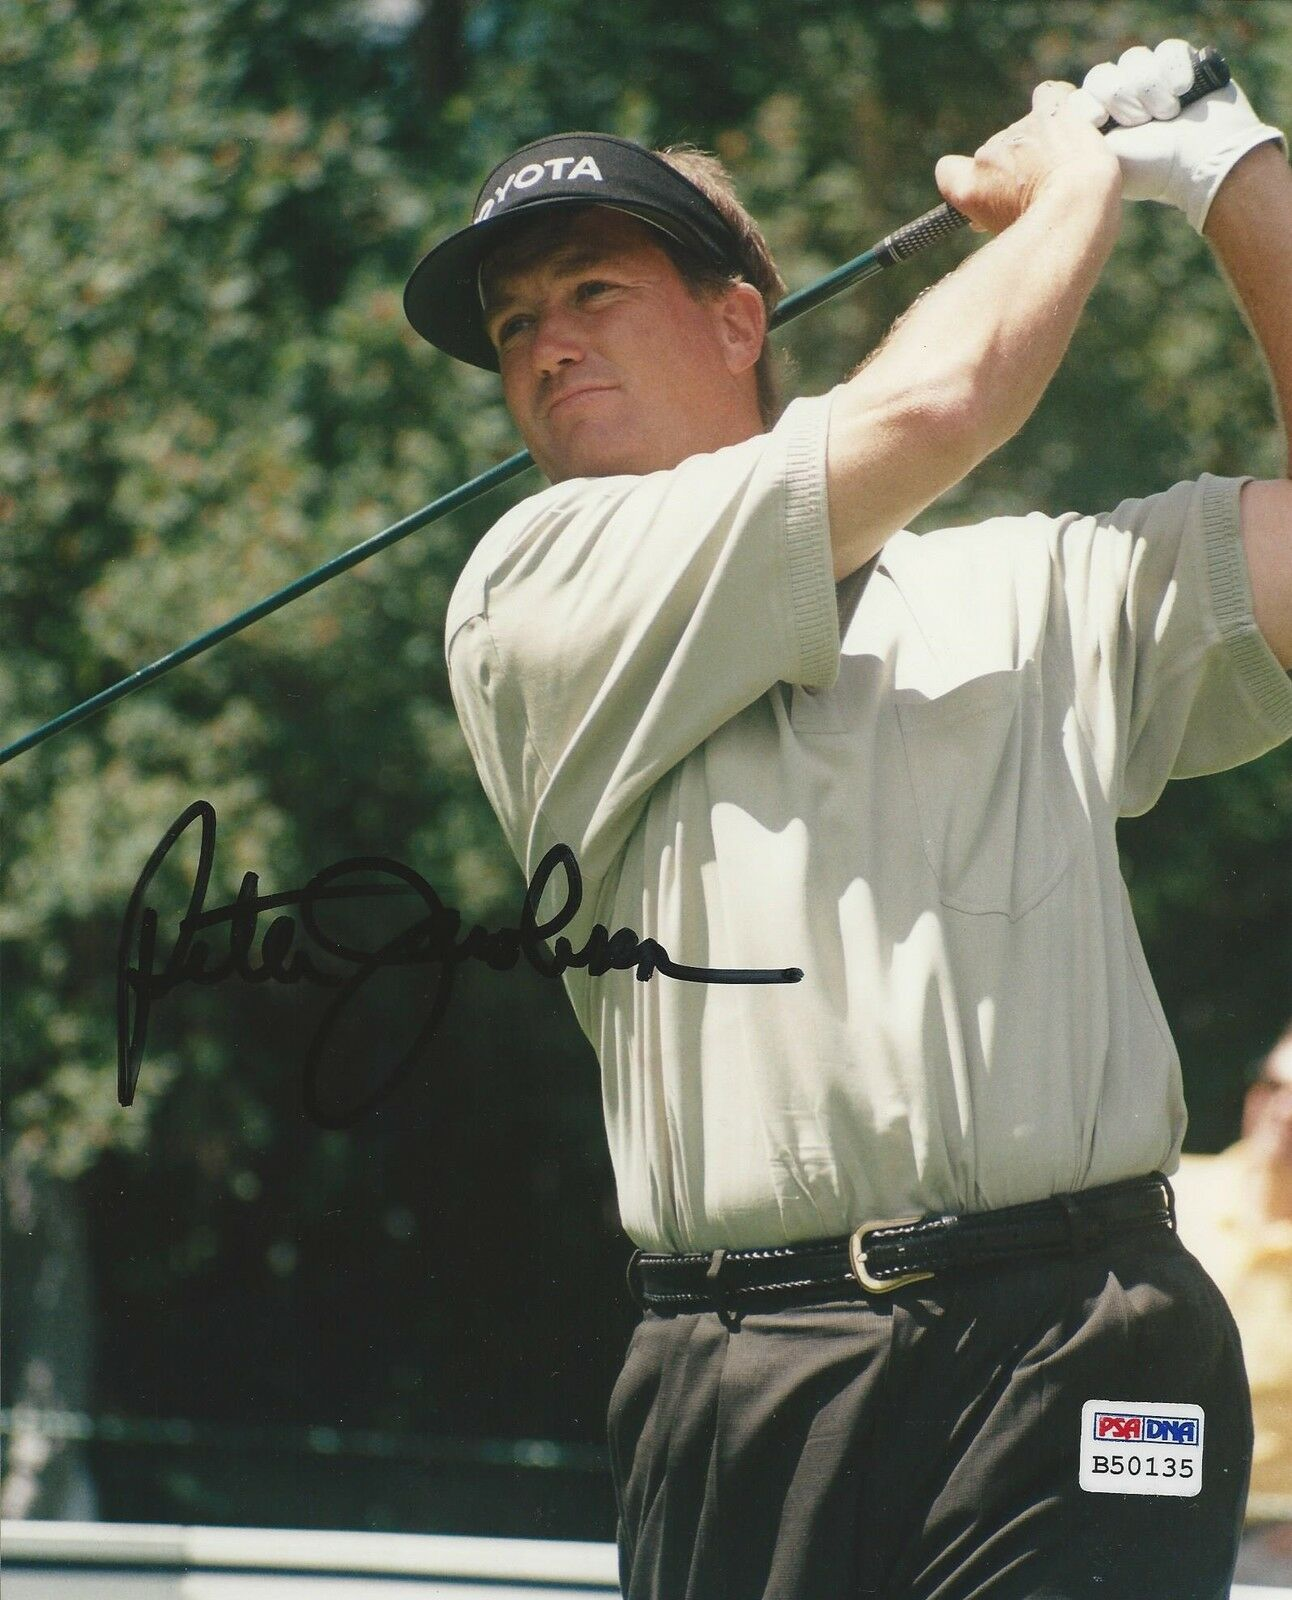 Peter Jacobson PGA Golf signed 8x10 photo PSA/DNA #B50135